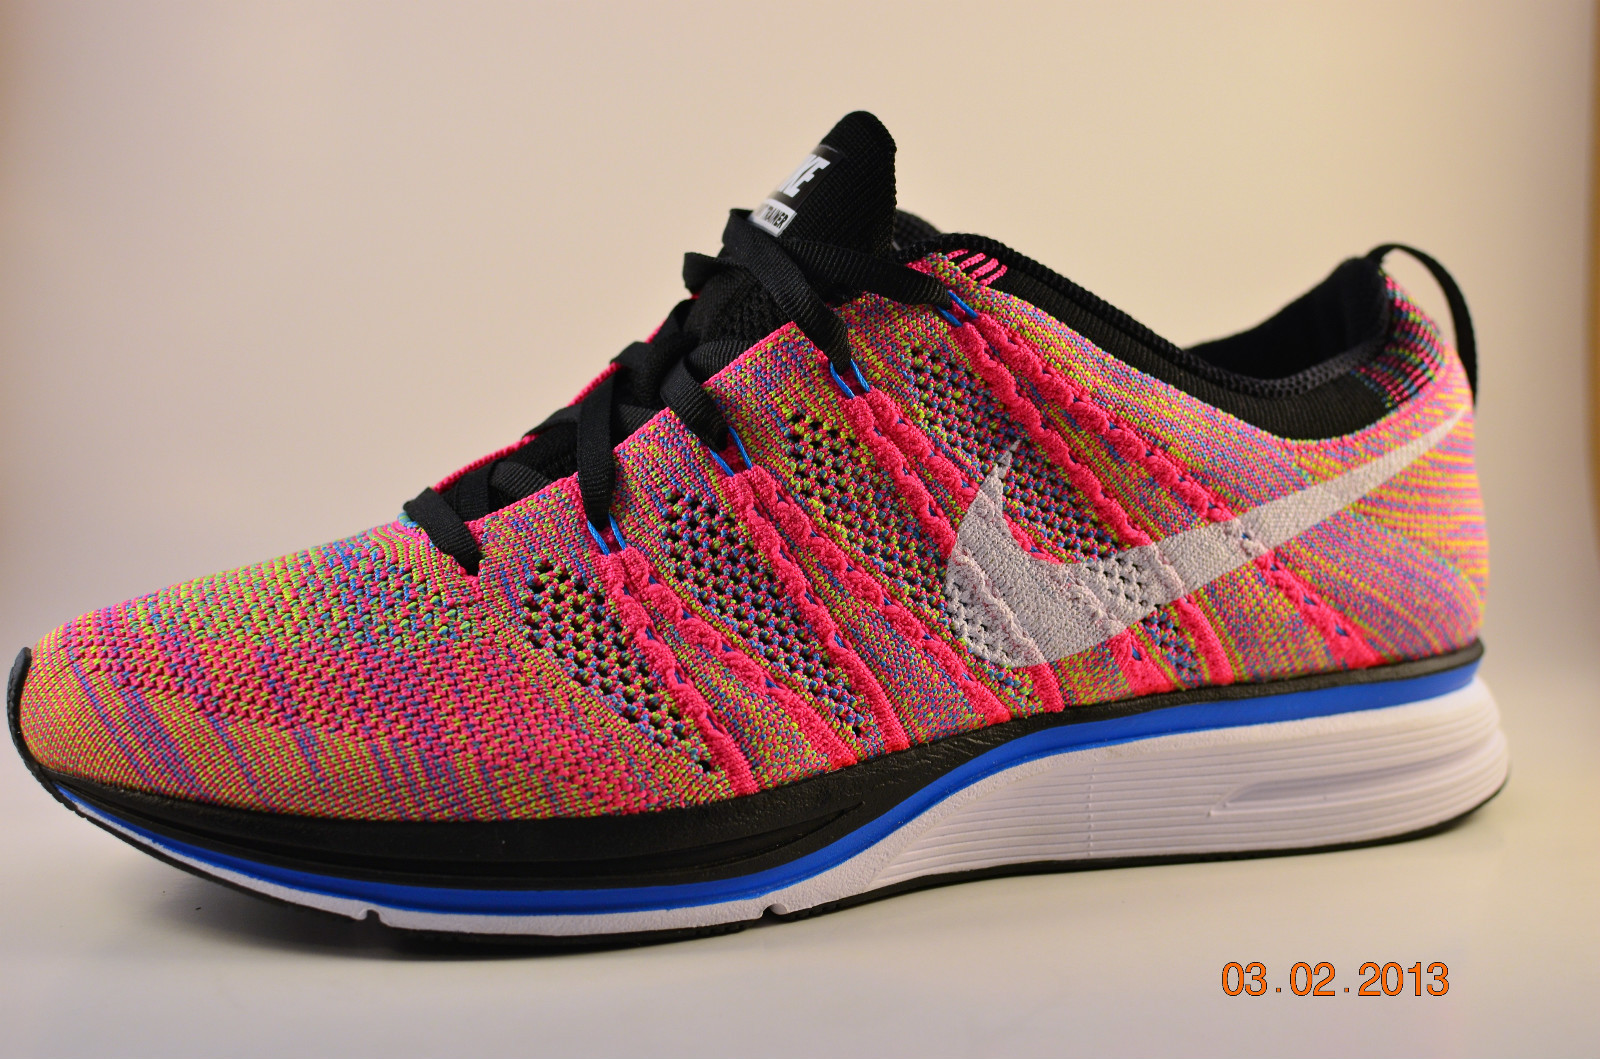 fb9a32ca3bbb Images of a new Nike Flyknit Trainer+